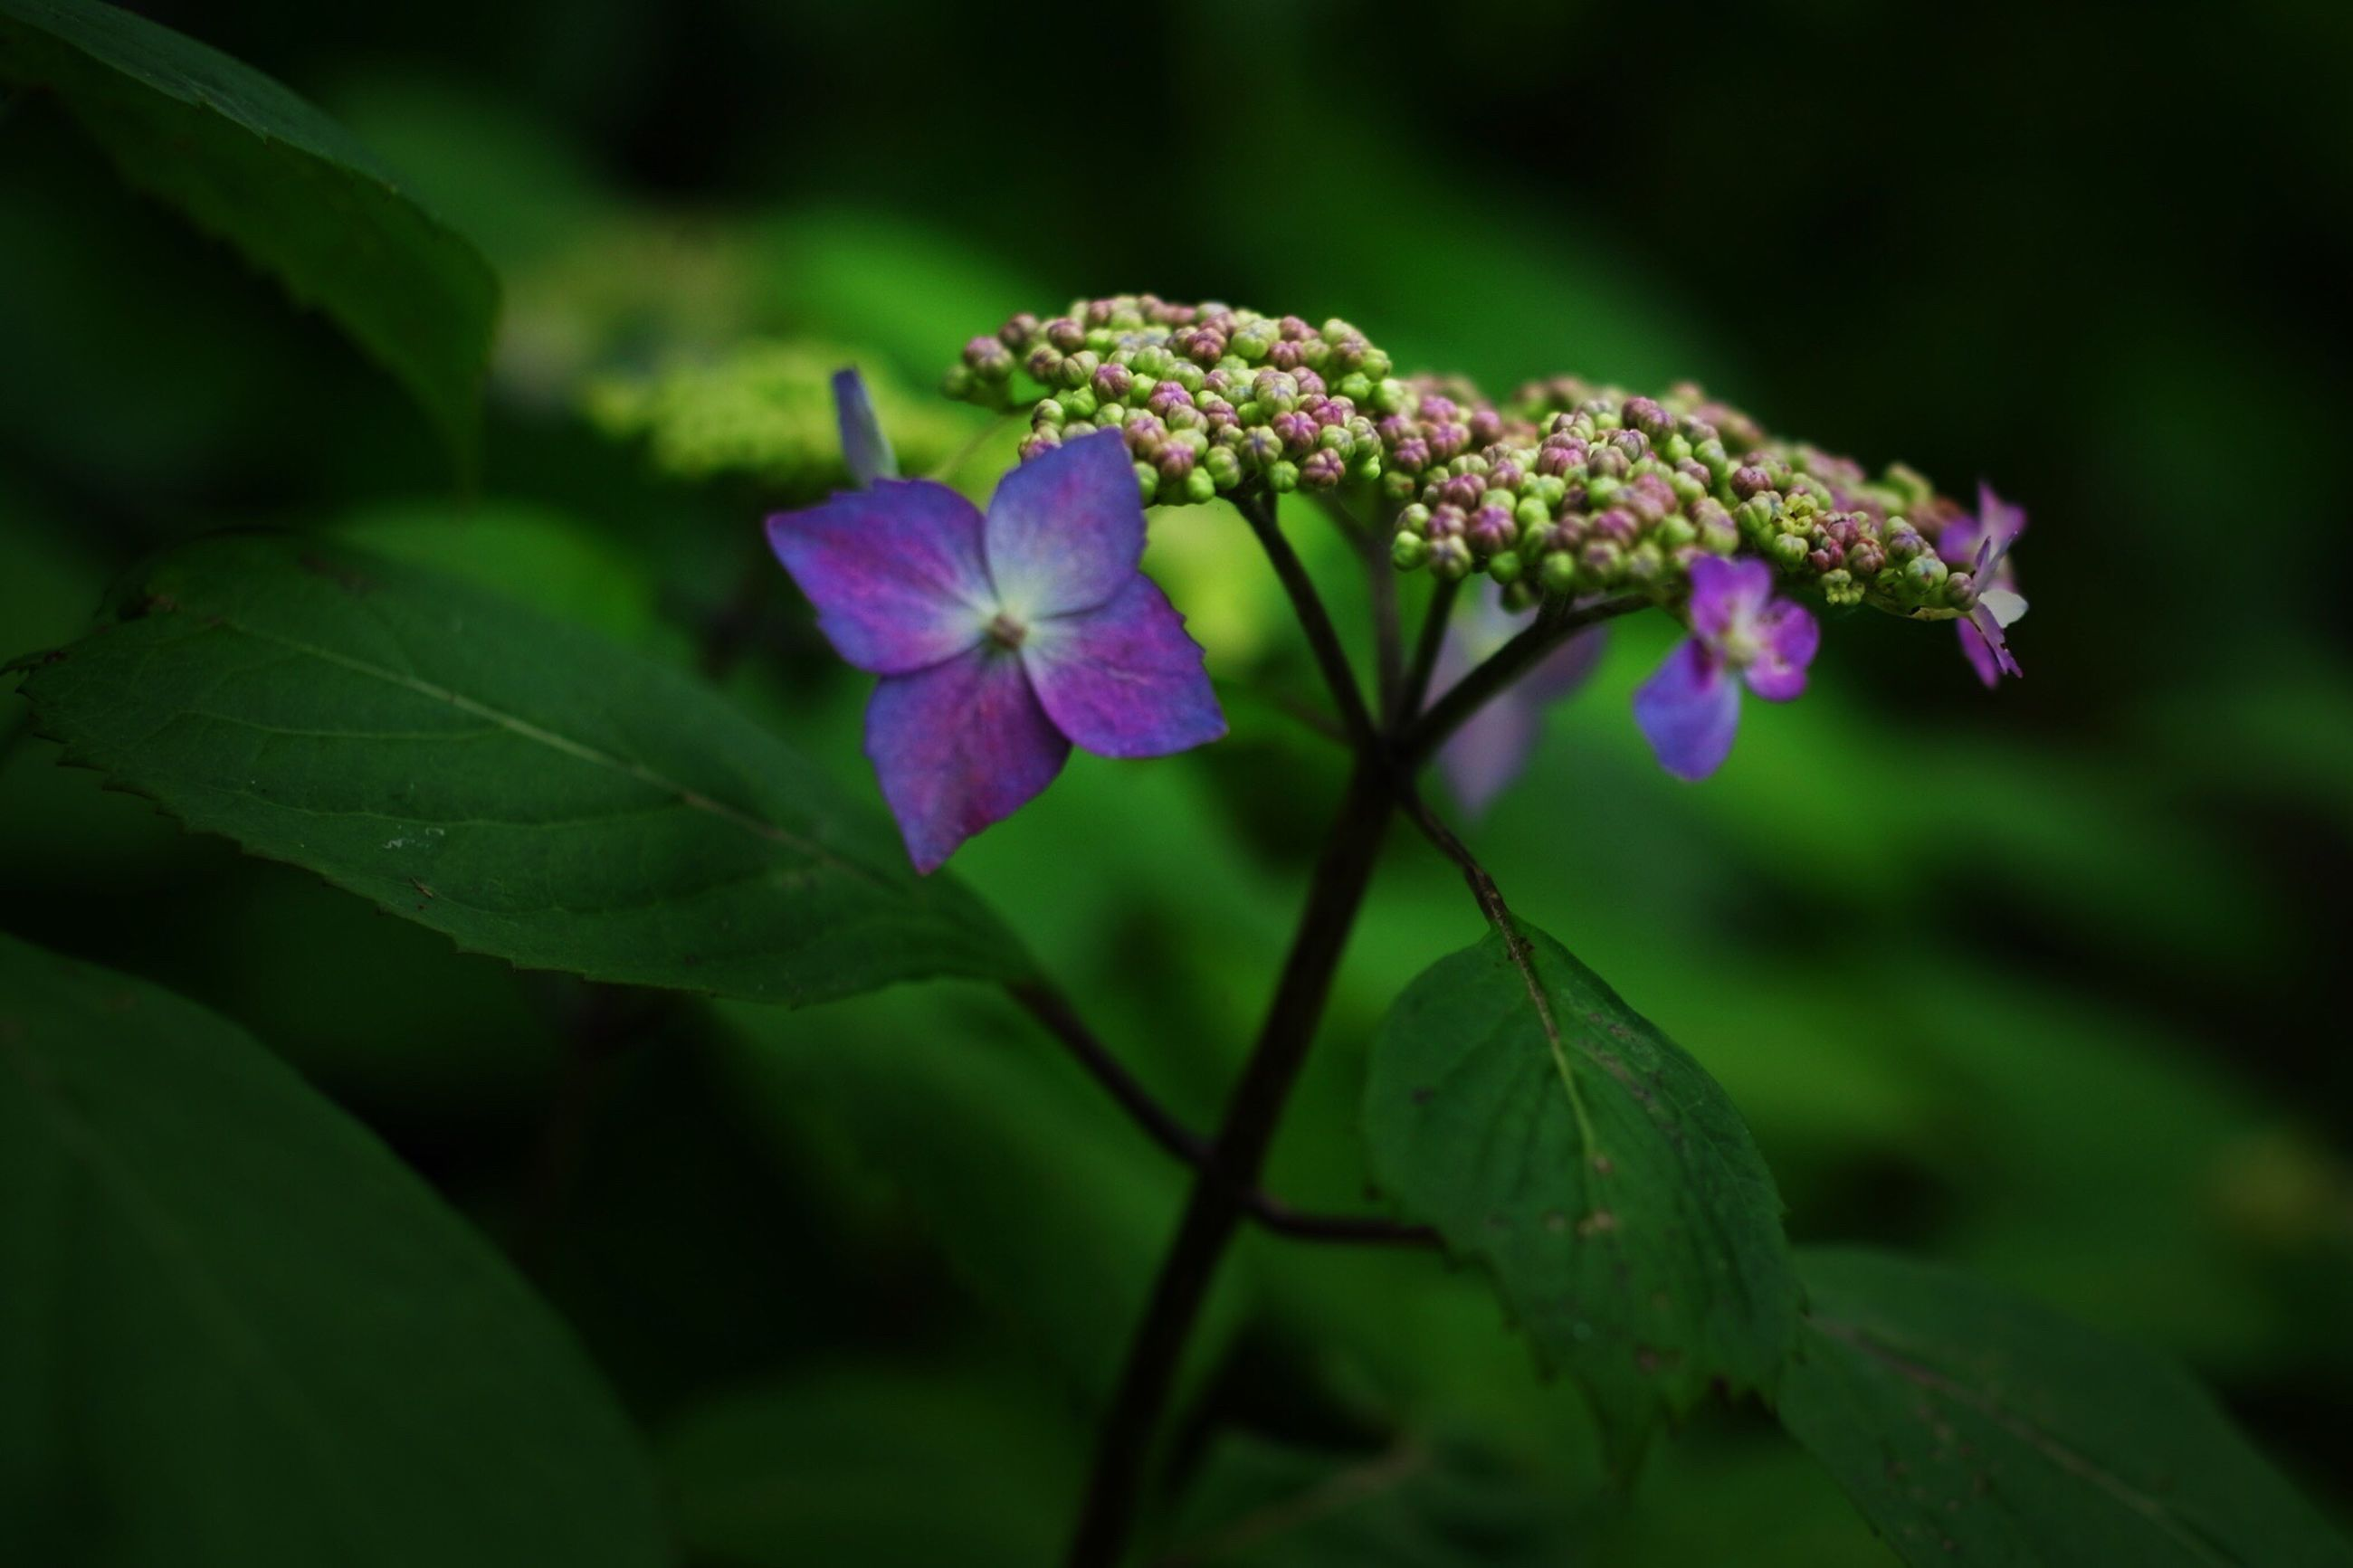 flower, freshness, growth, purple, fragility, beauty in nature, leaf, petal, close-up, plant, nature, focus on foreground, flower head, blooming, green color, in bloom, selective focus, stem, outdoors, day